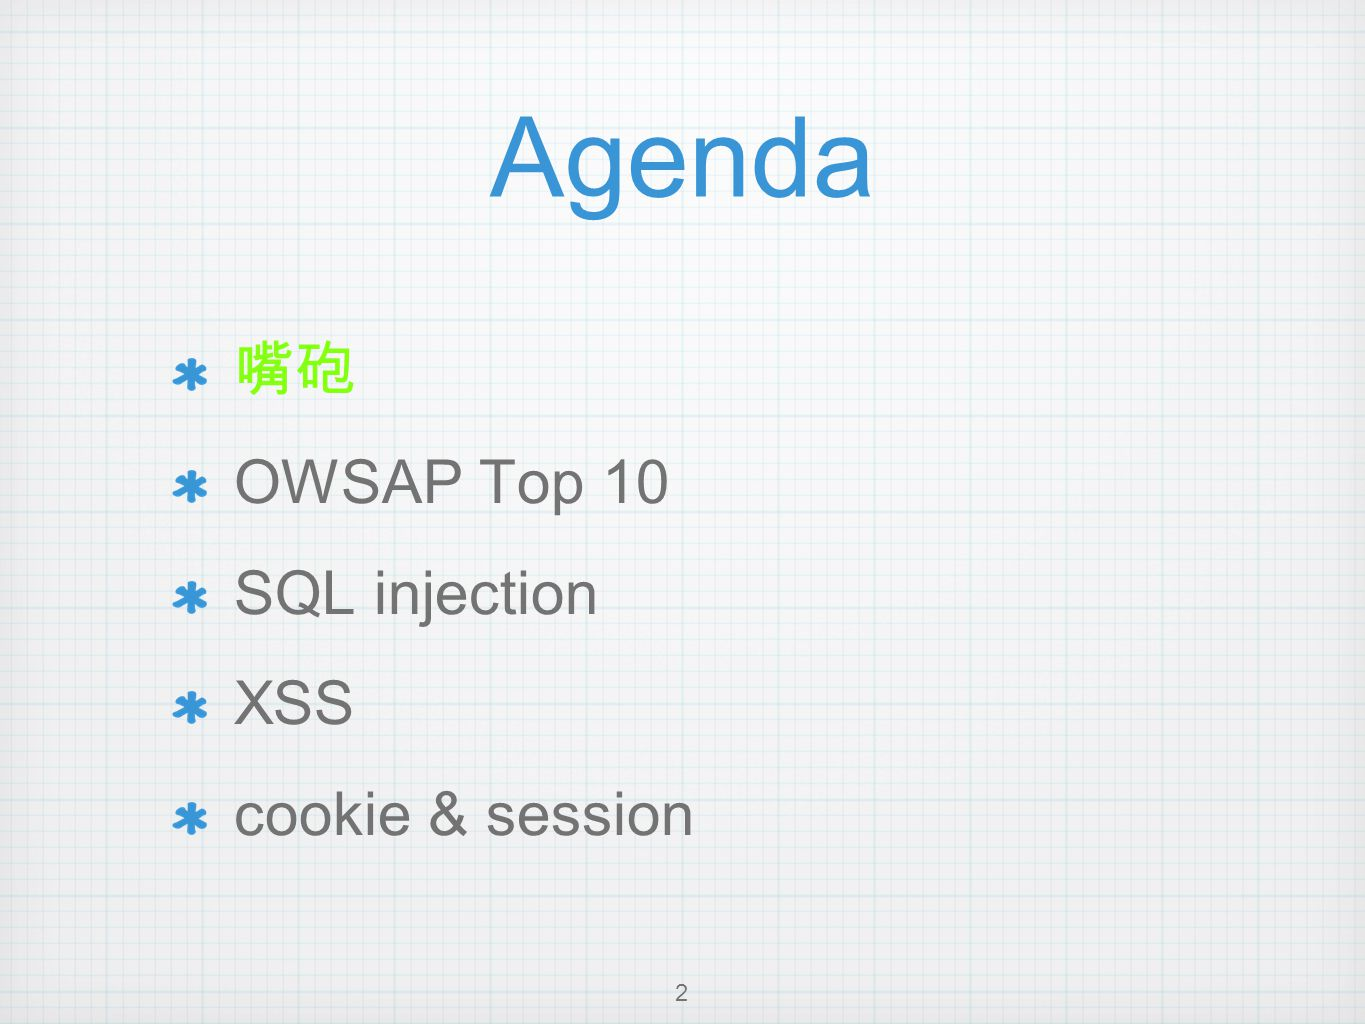 Agenda 嘴砲 OWSAP Top 10 SQL injection XSS cookie & session 2